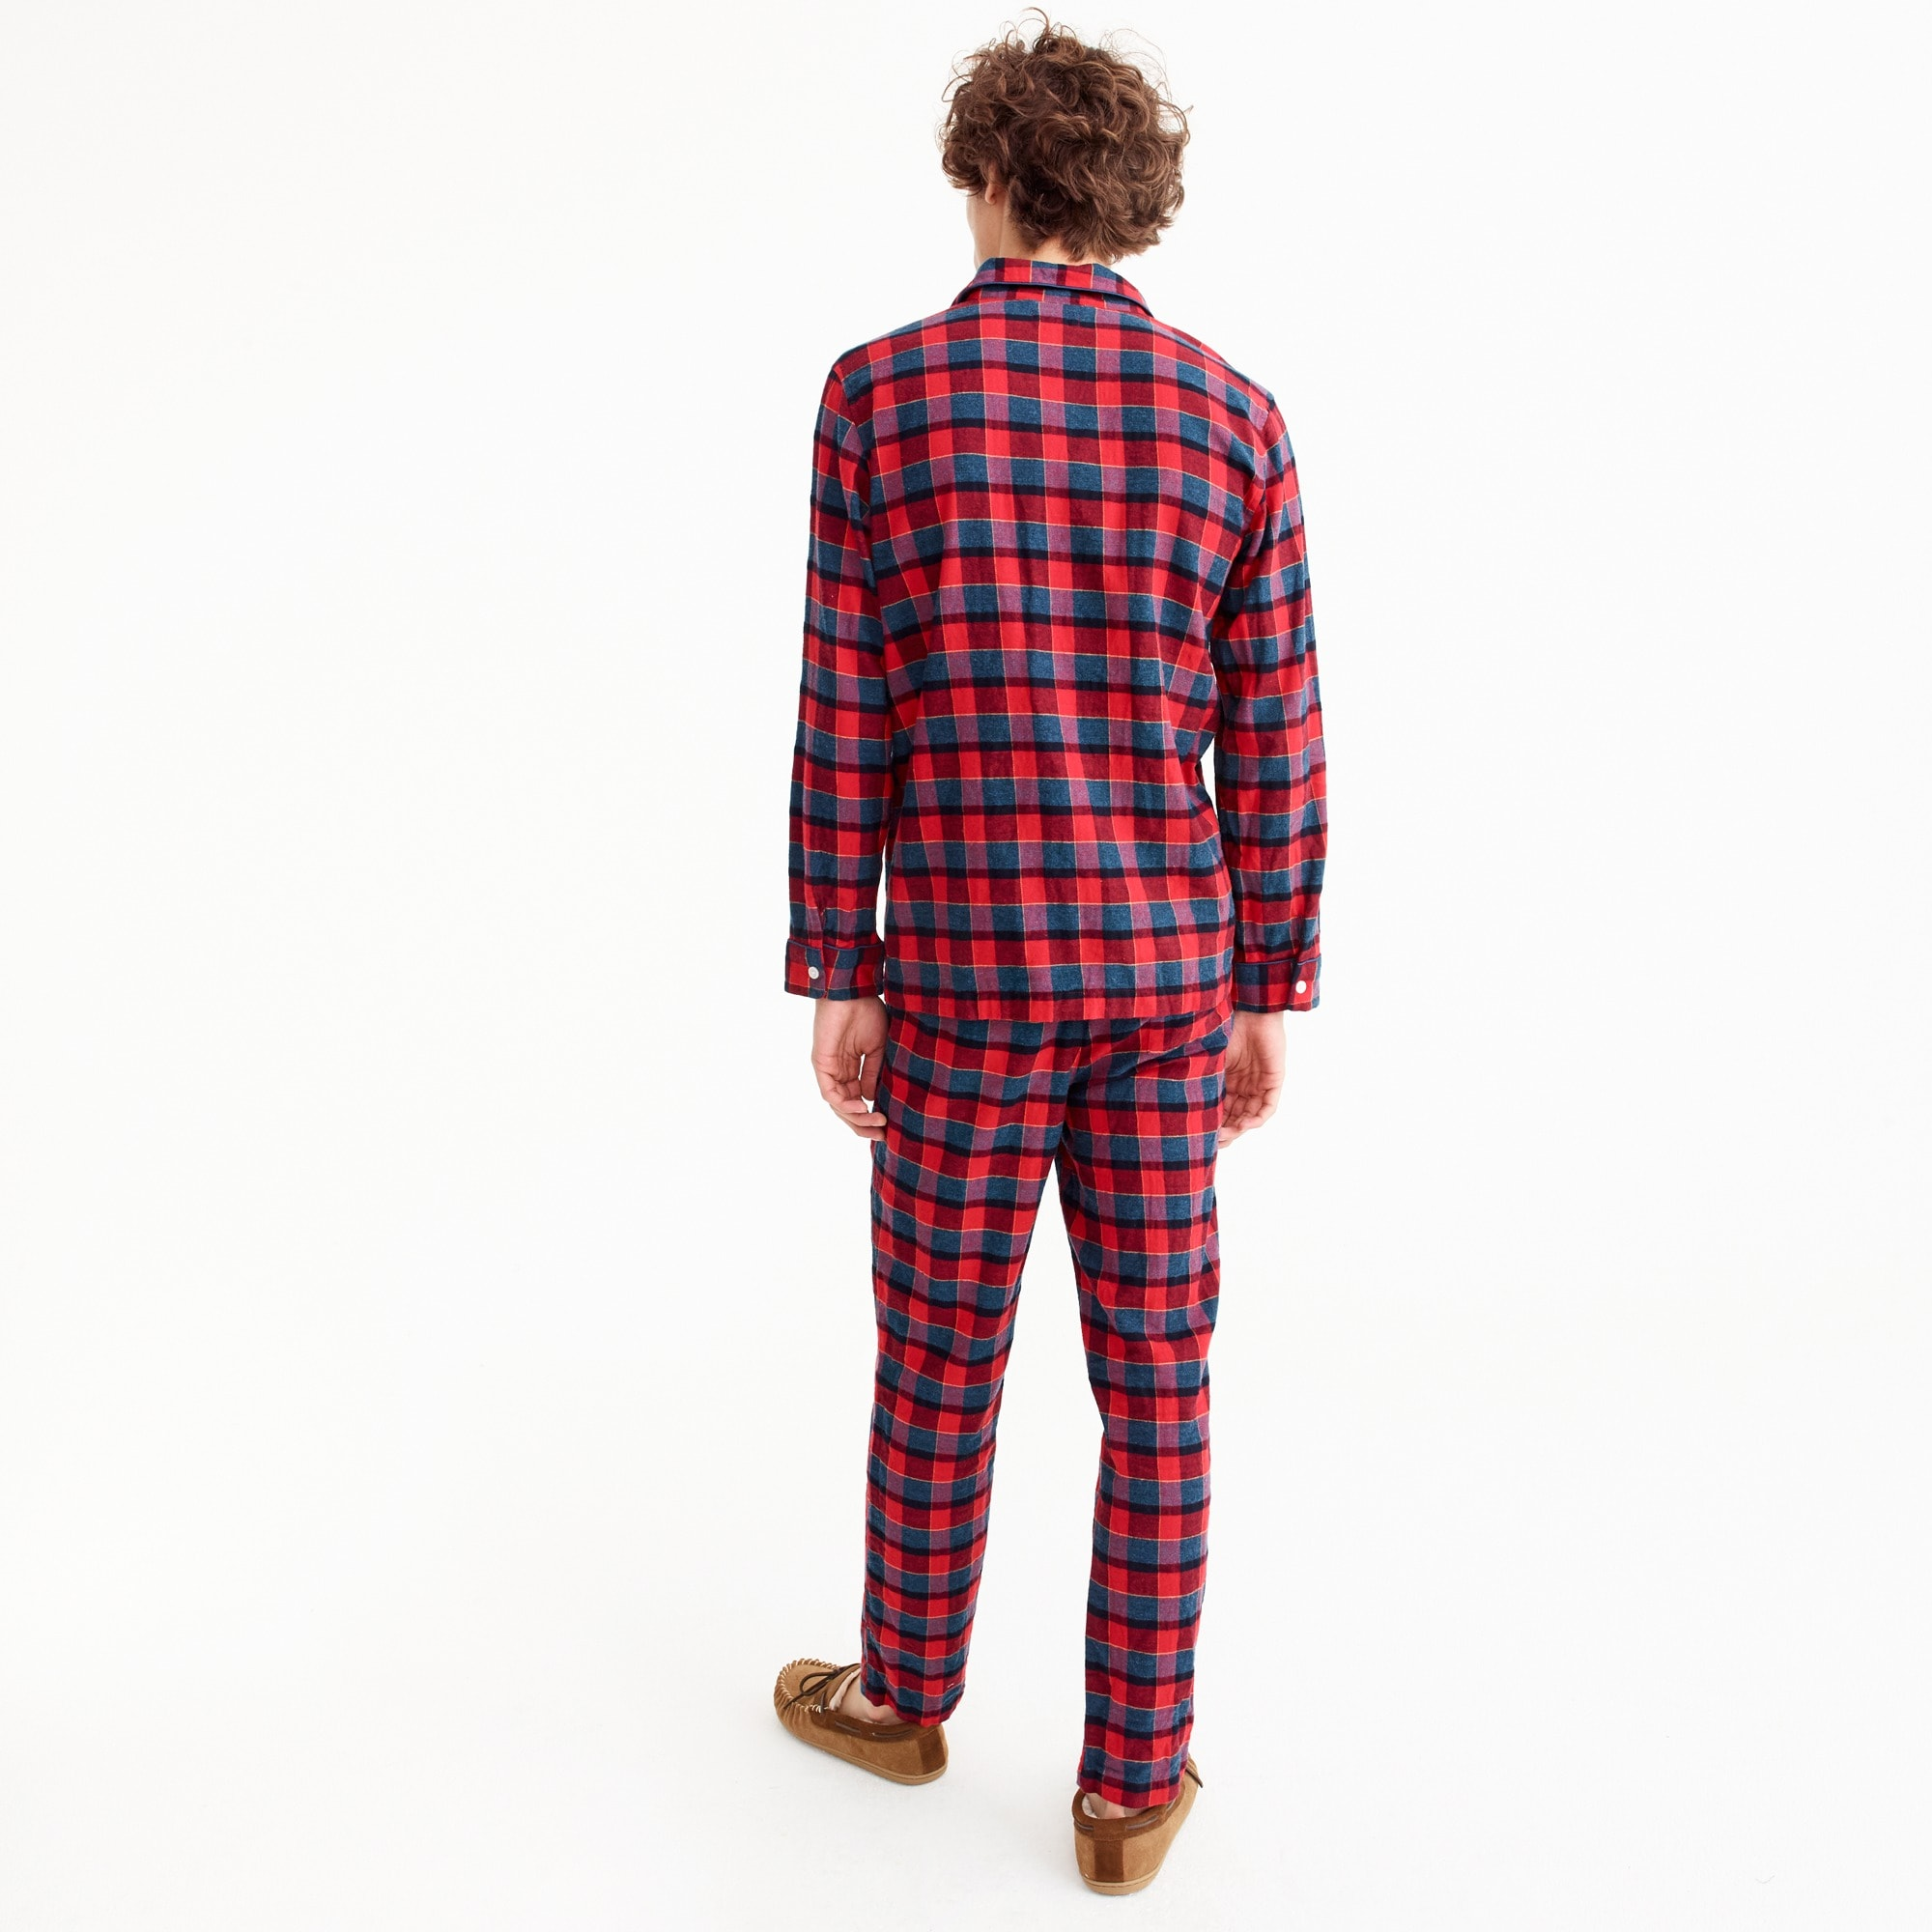 Pajama set in red and blue check